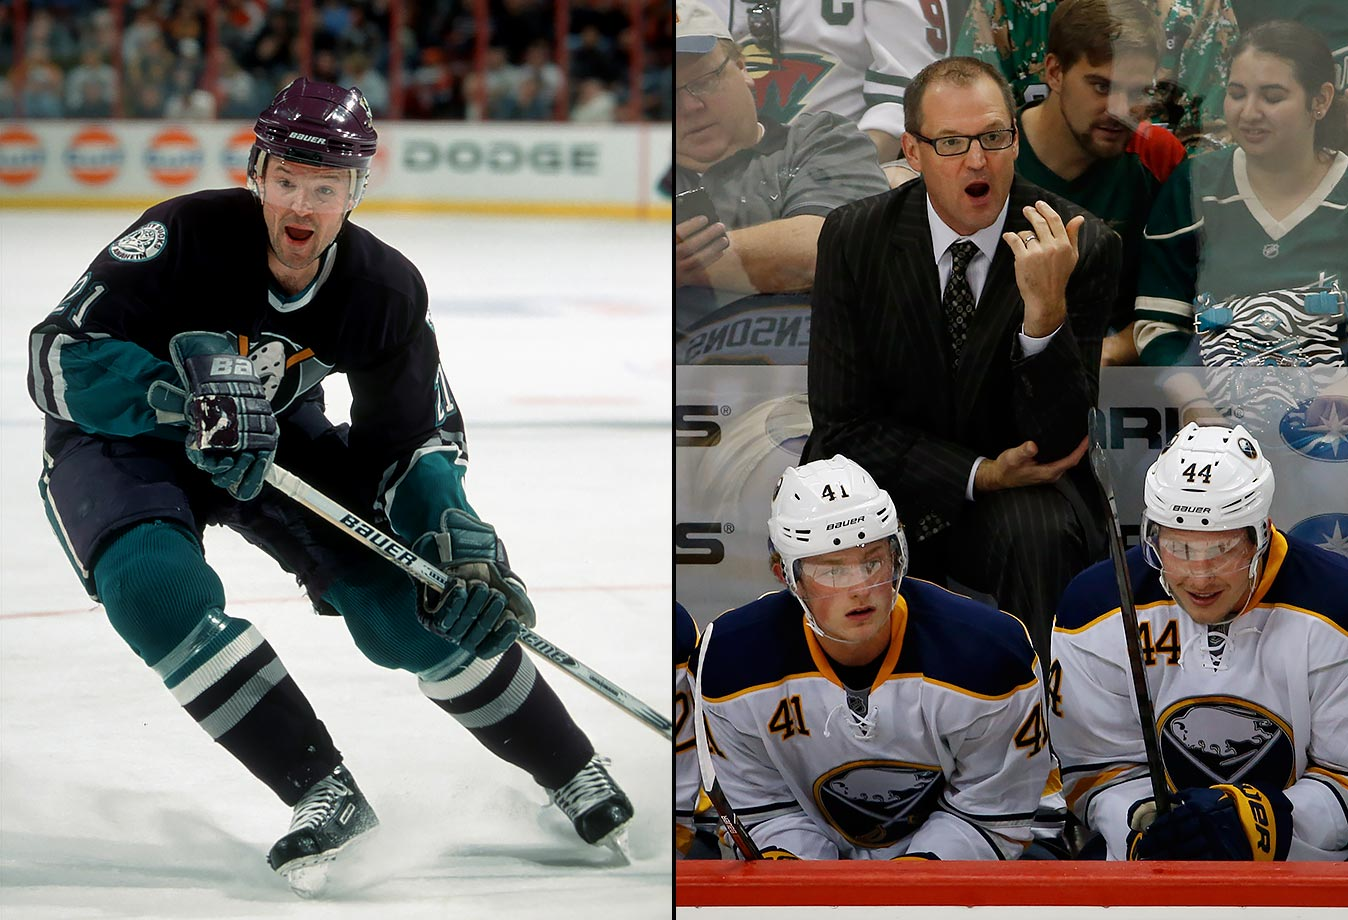 A brainy high school golf and baseball star, Bylsma played college hockey at Bowling Green. He was drafted by Winnipeg in the sixth round of the 1989 NHL Draft but later signed with the Kings. A defensive forward, he spent his nine seasons in the NHL with L.A. and the Mighty Ducks of Anaheim, for whom he became an alternate captain. Bylsma, who coached the Pittsburgh Penguins to a Stanley Cup in 2009 after replacing Michel Terrien through most of the season, was named head coach of the Buffalo Sabres prior to the 2015-16 season. Through his first season as head coach, Bylsma is 35-36-11.